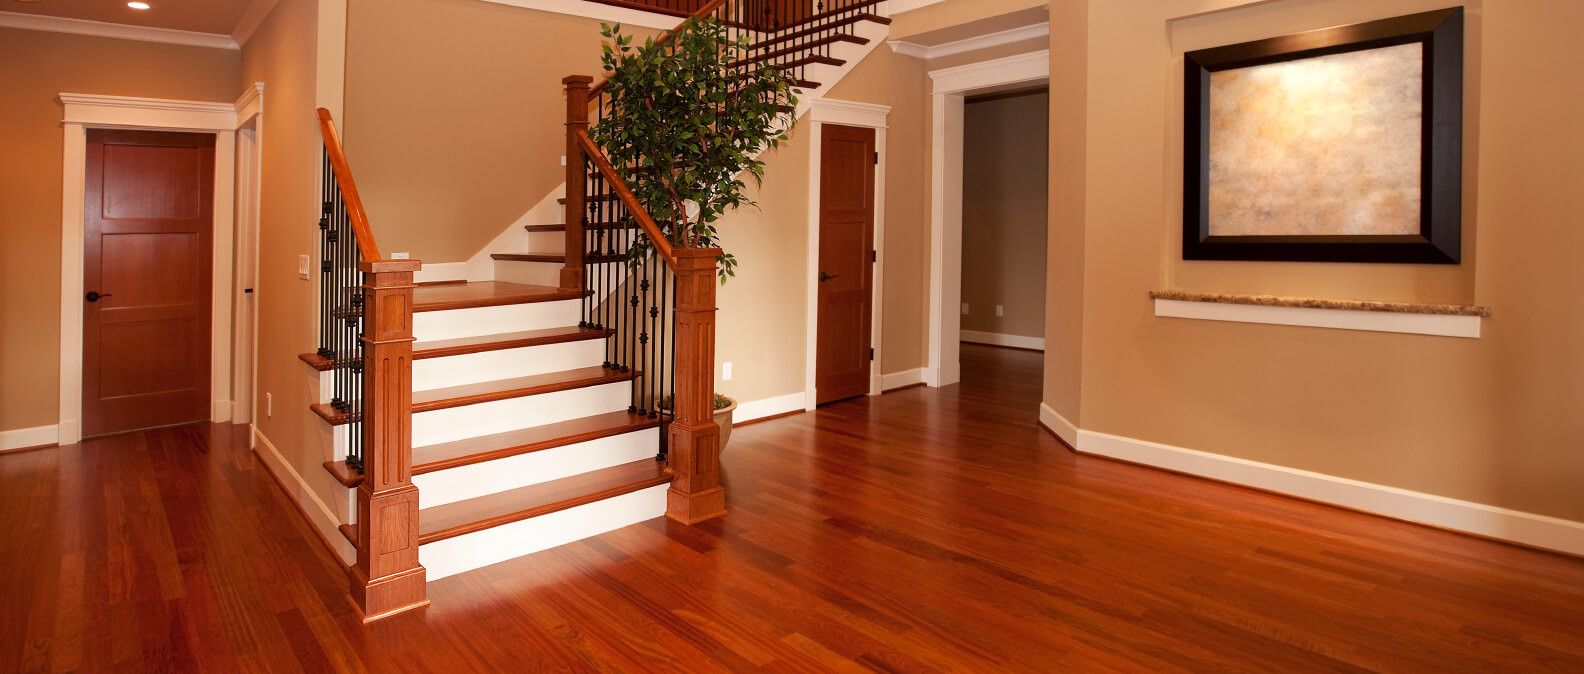 costco hardwood flooring installation cost of breathtaking hardwood flooring pictures beautiful floors are here only inside breathtaking hardwood flooring picture floor installation laminate milton oakville cost near me toronto lowe home depot